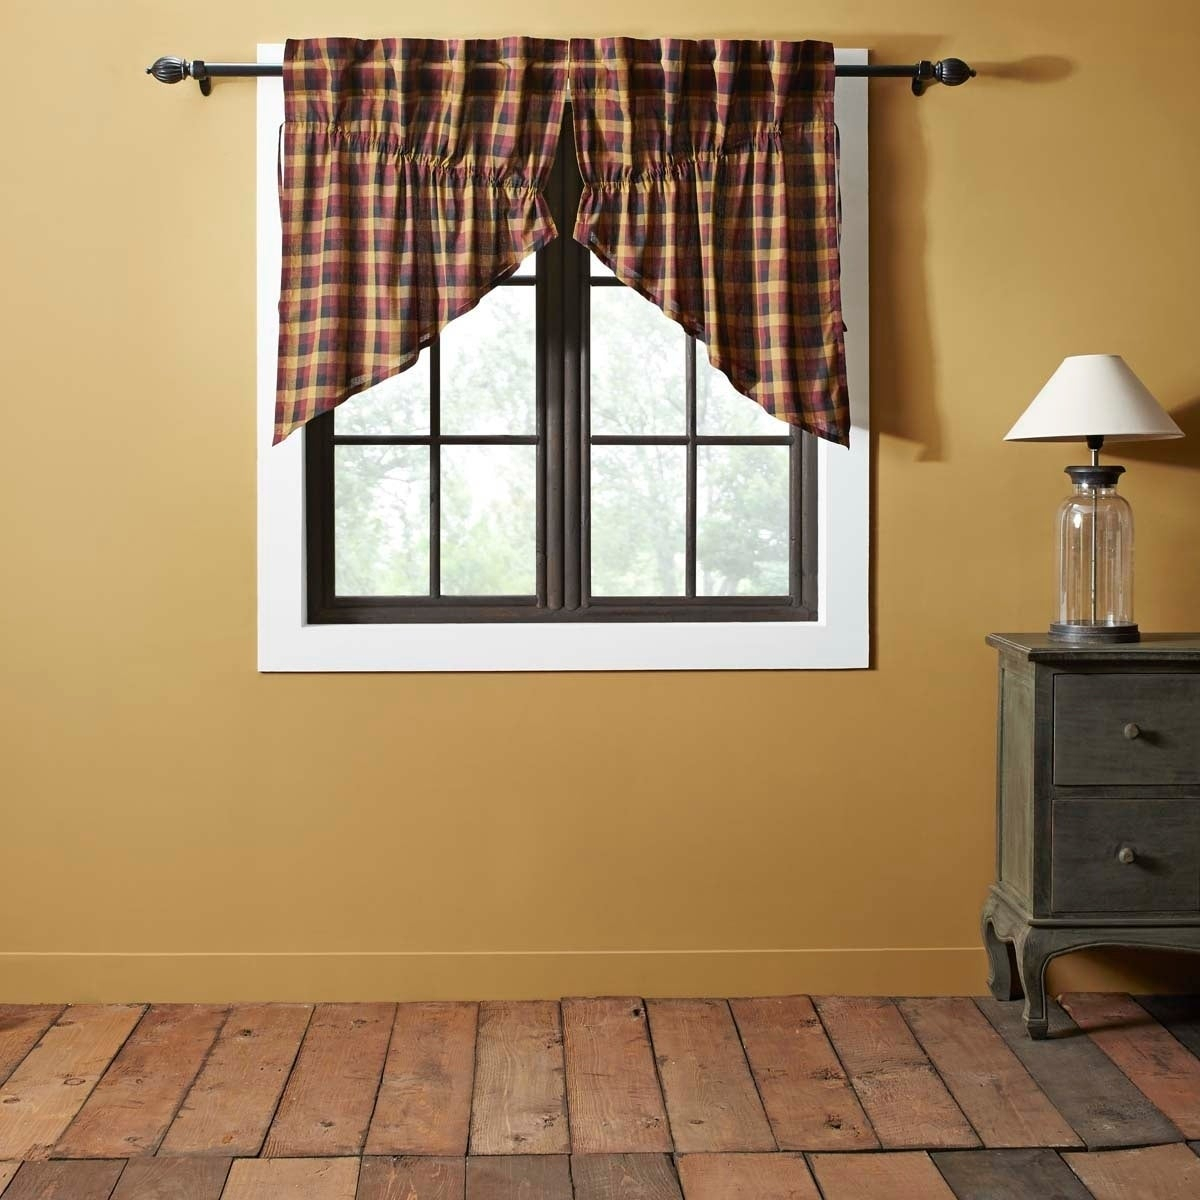 Red Primitive Kitchen Curtains Vhc Heritage Farms Prairie Swag Pair Rod  Pocket Cotton Plaid – Prairie Swag 36X36X18 Regarding Primitive Kitchen Curtains (Gallery 6 of 20)